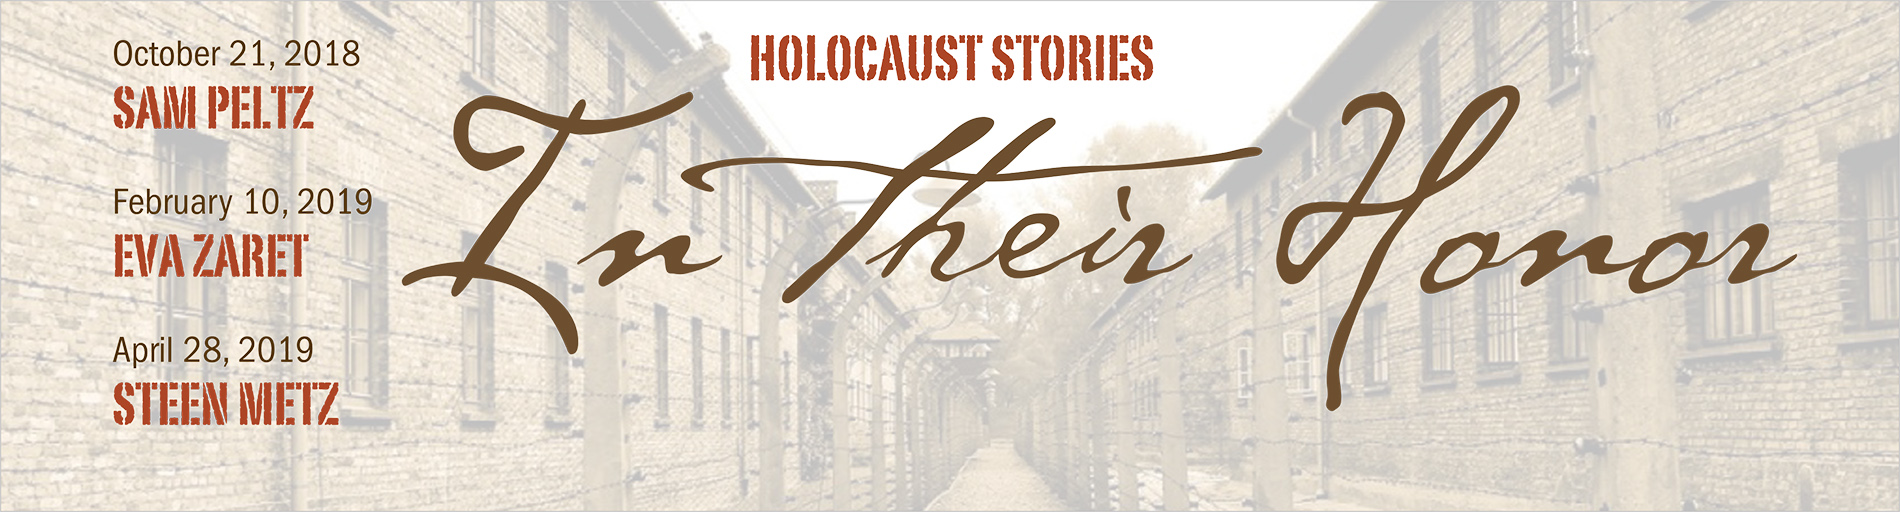 Holocaust Stories: In their Honor